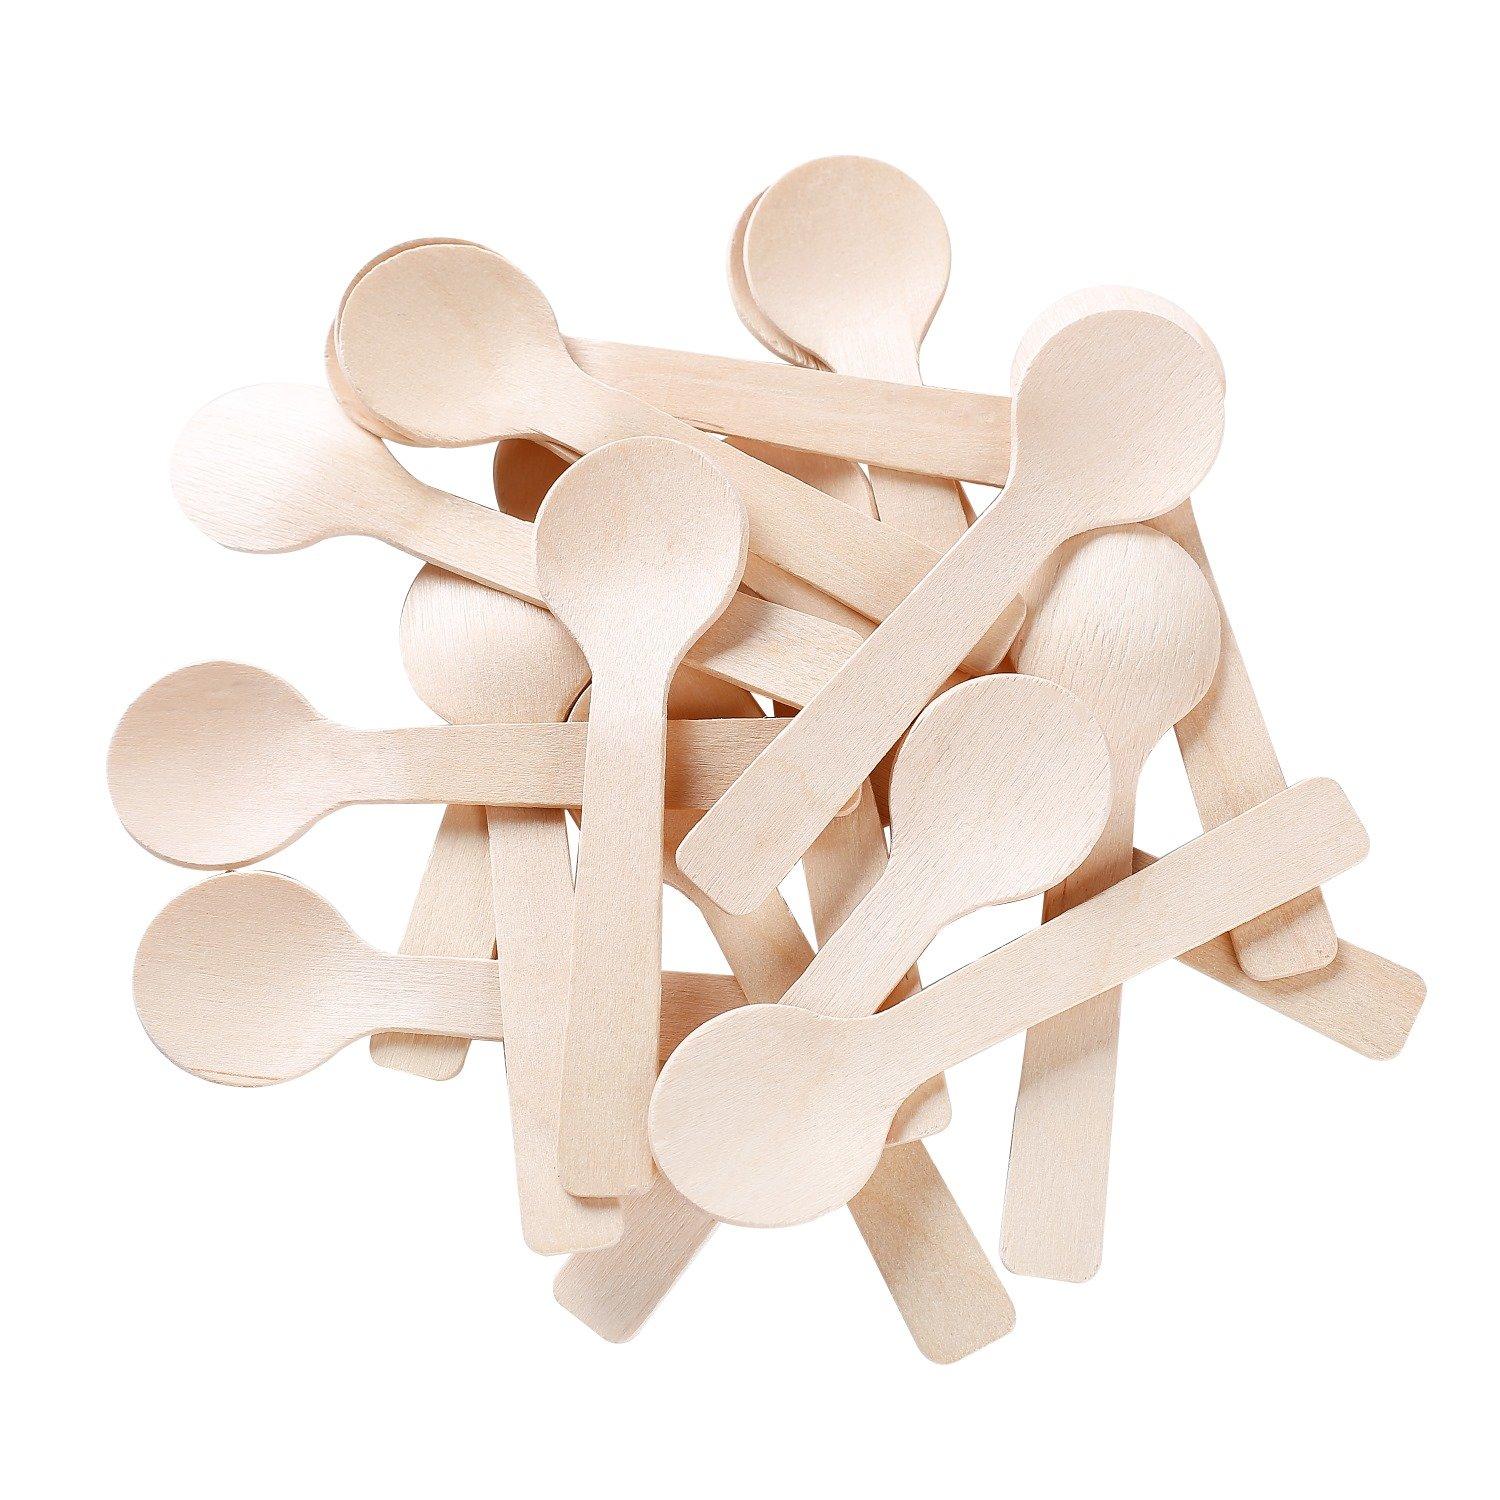 mini wooden spoons perfect for icecream